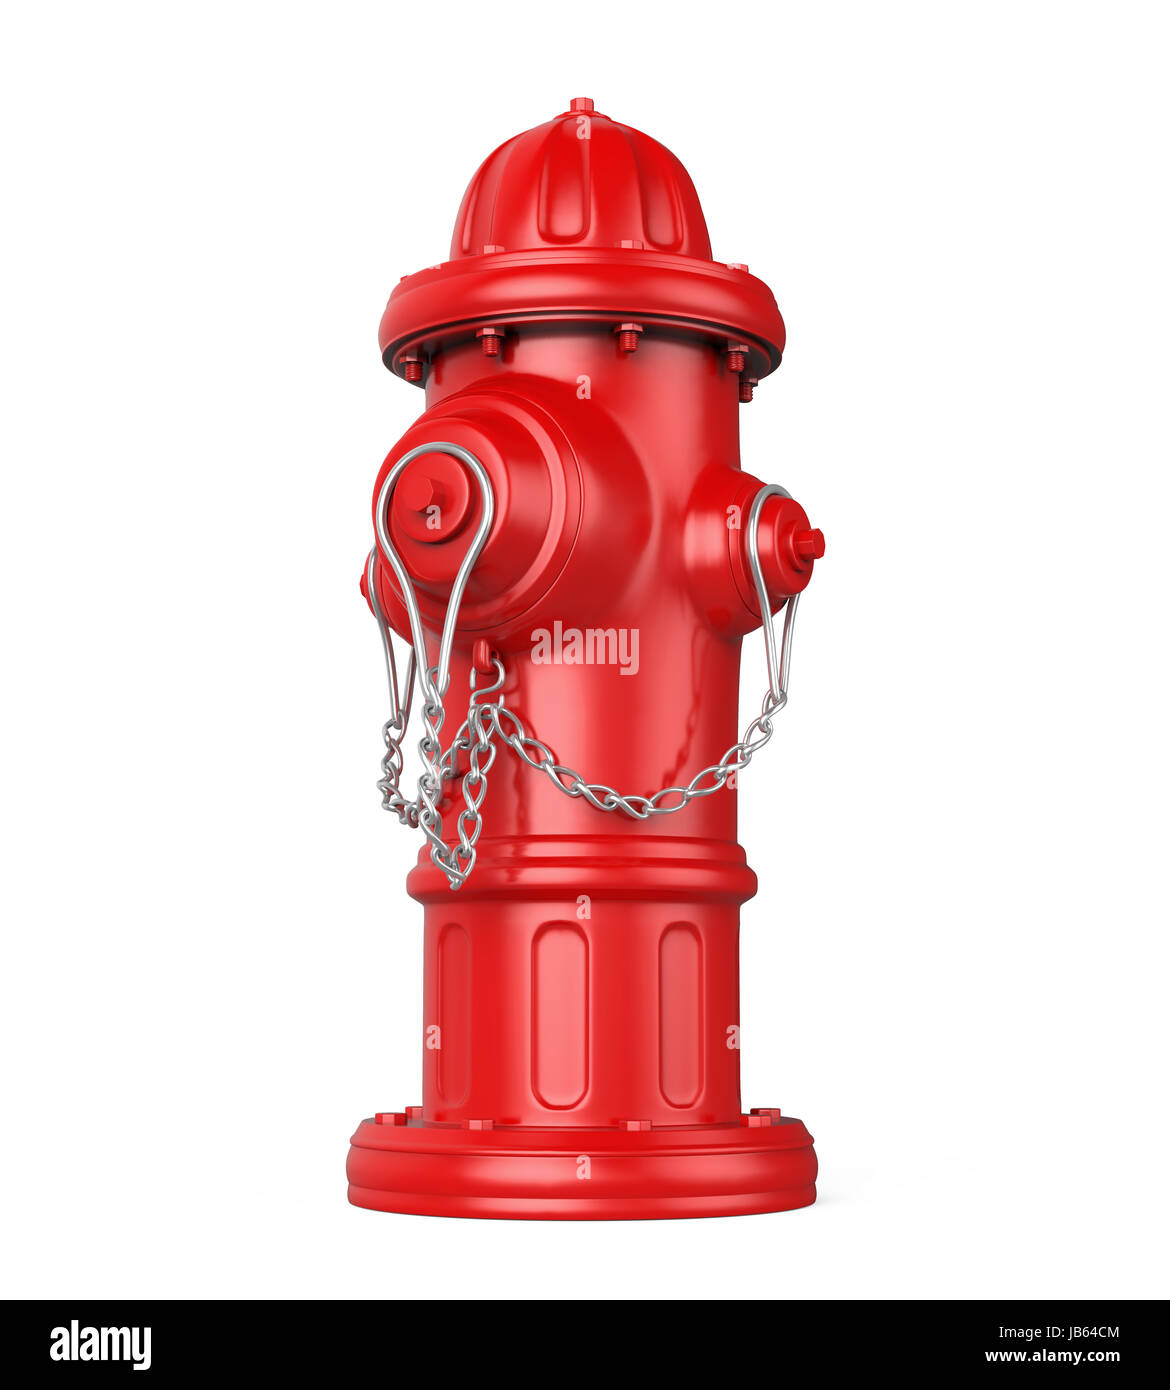 Fire Hydrant Isolated - Stock Image